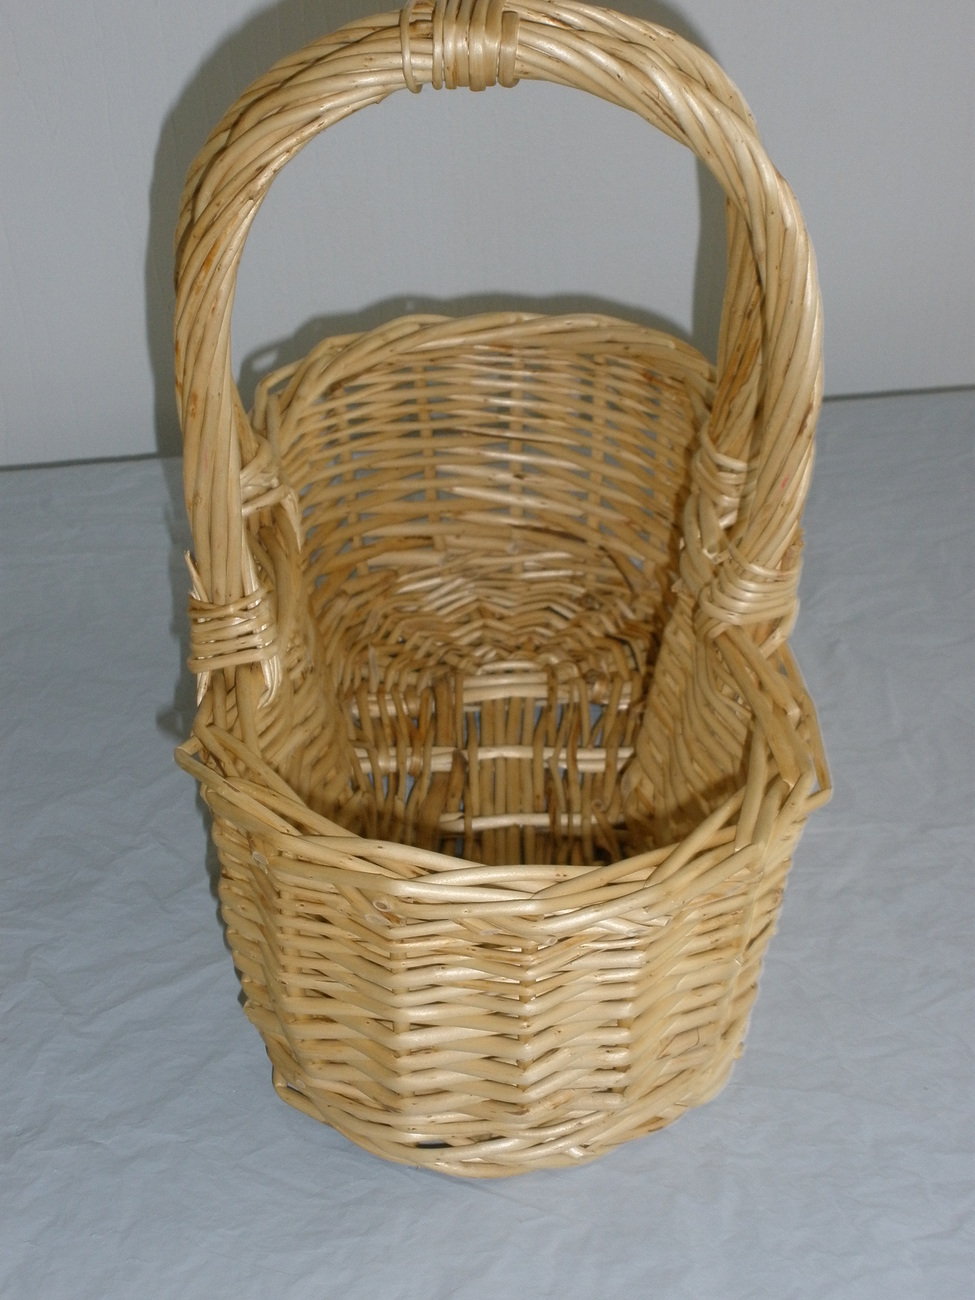 wicker basket with handle baskets. Black Bedroom Furniture Sets. Home Design Ideas